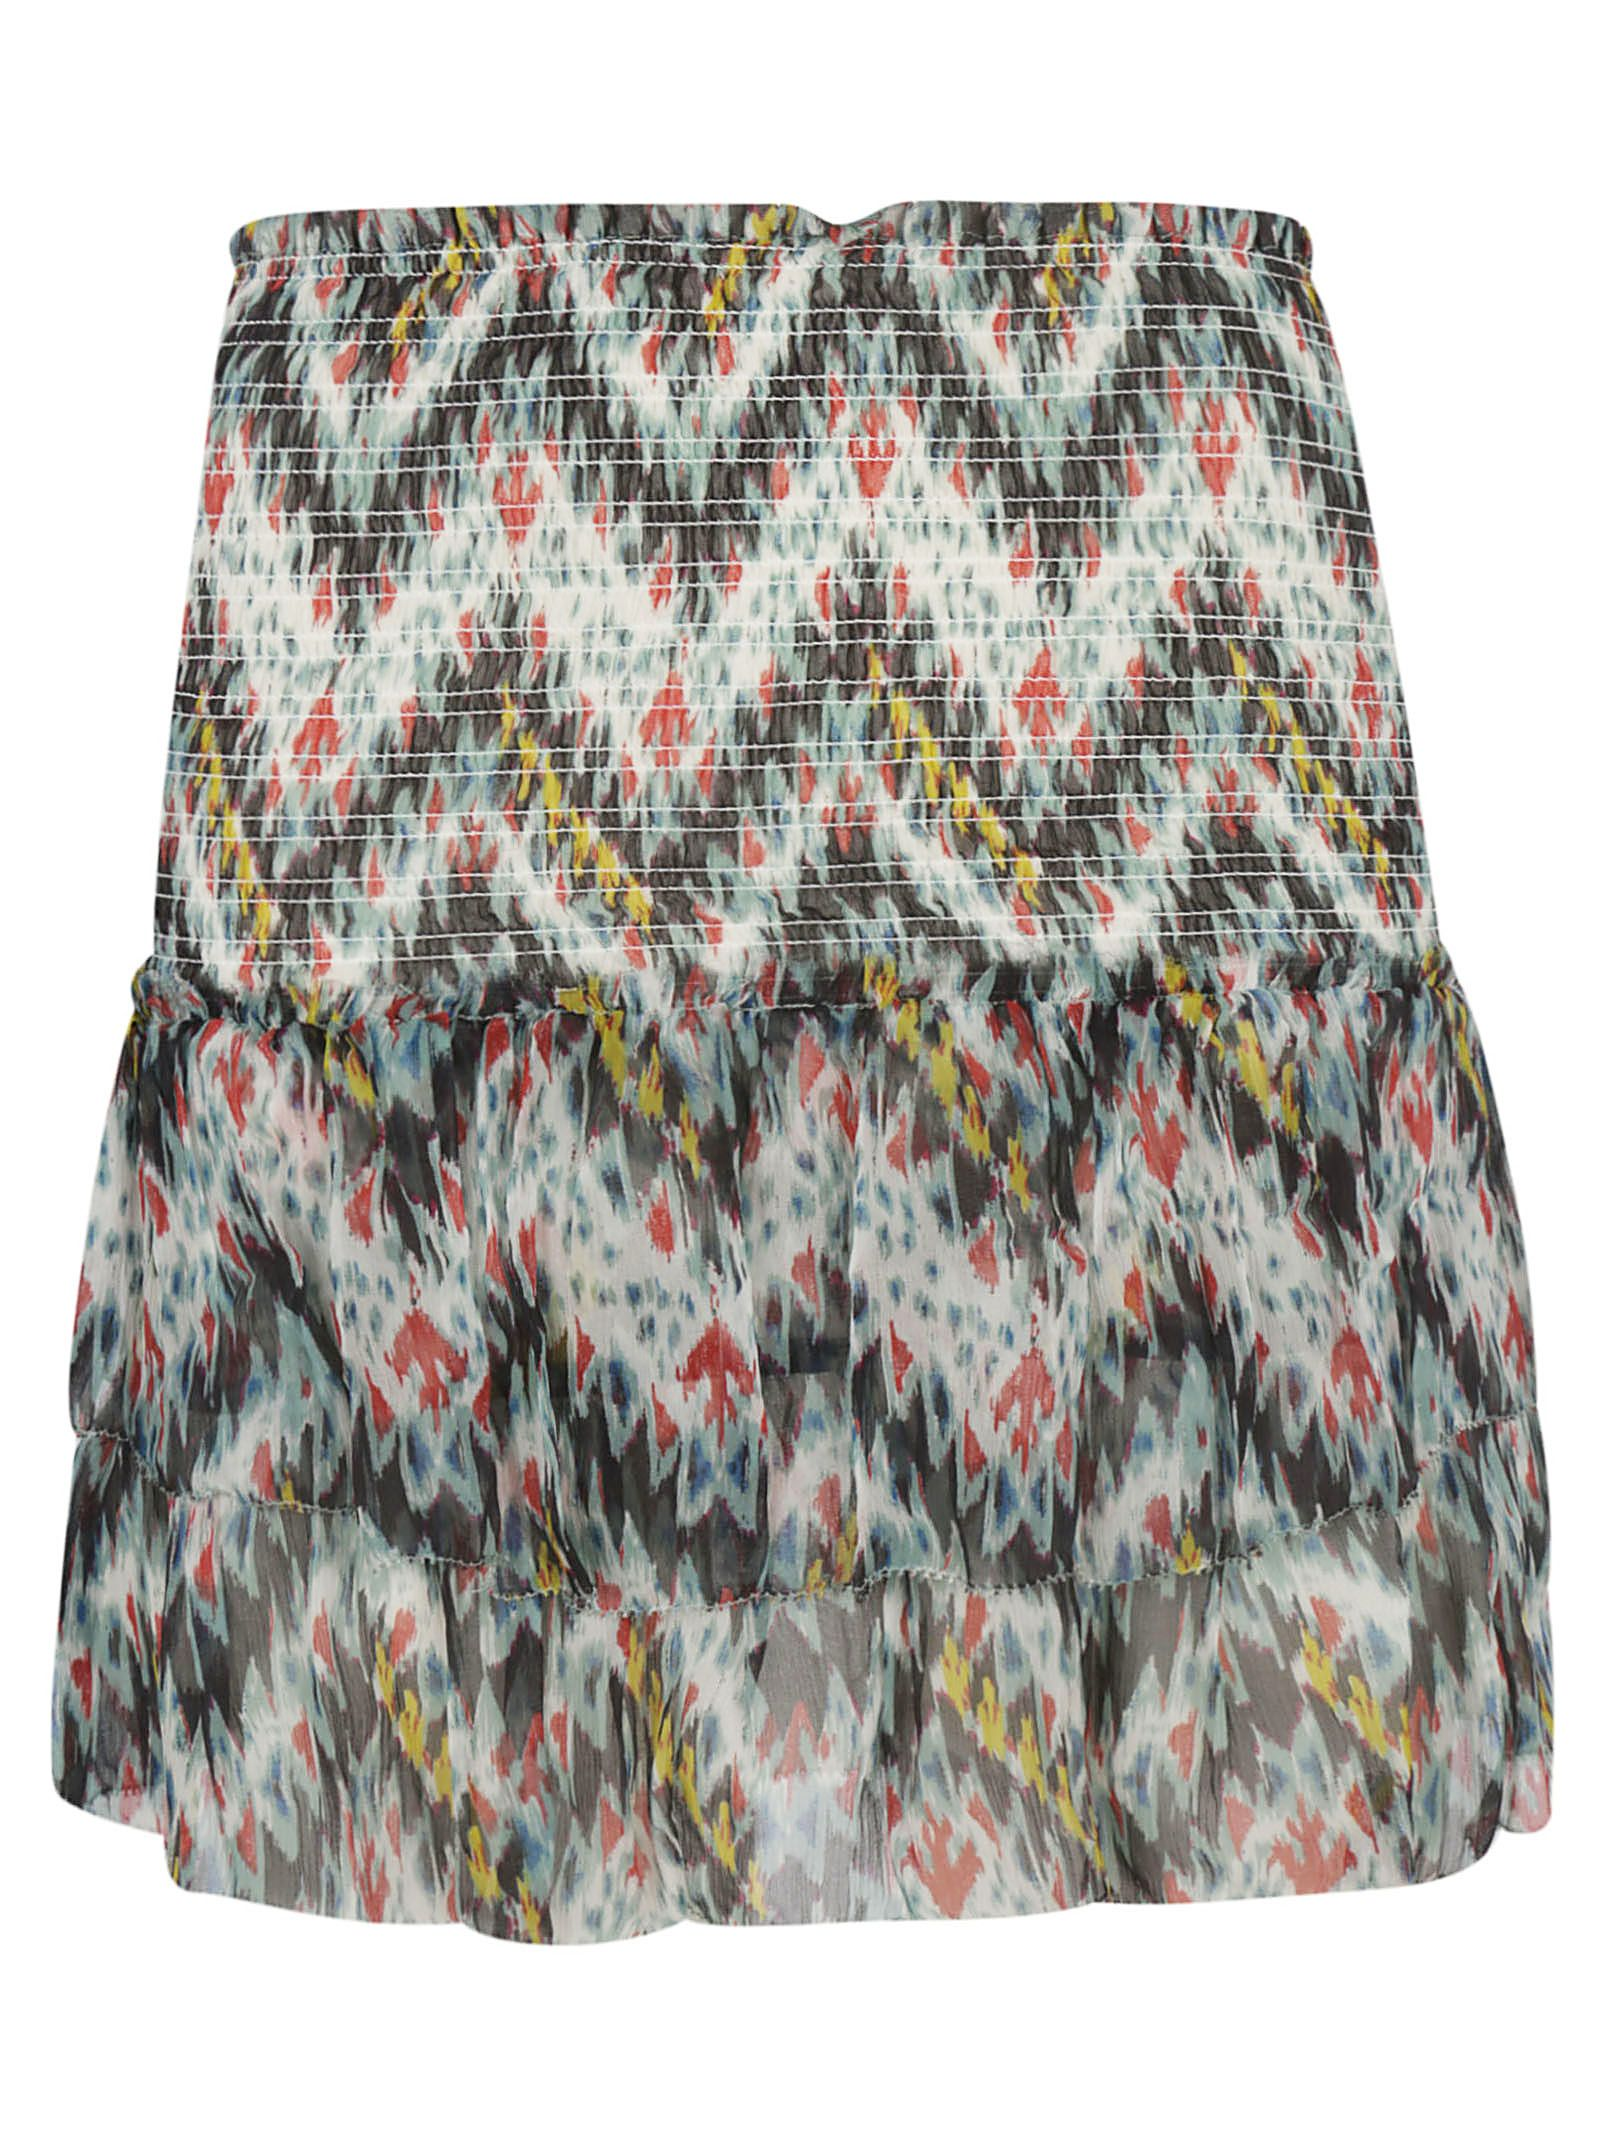 Isabel Marant Tiered Printed Skirt